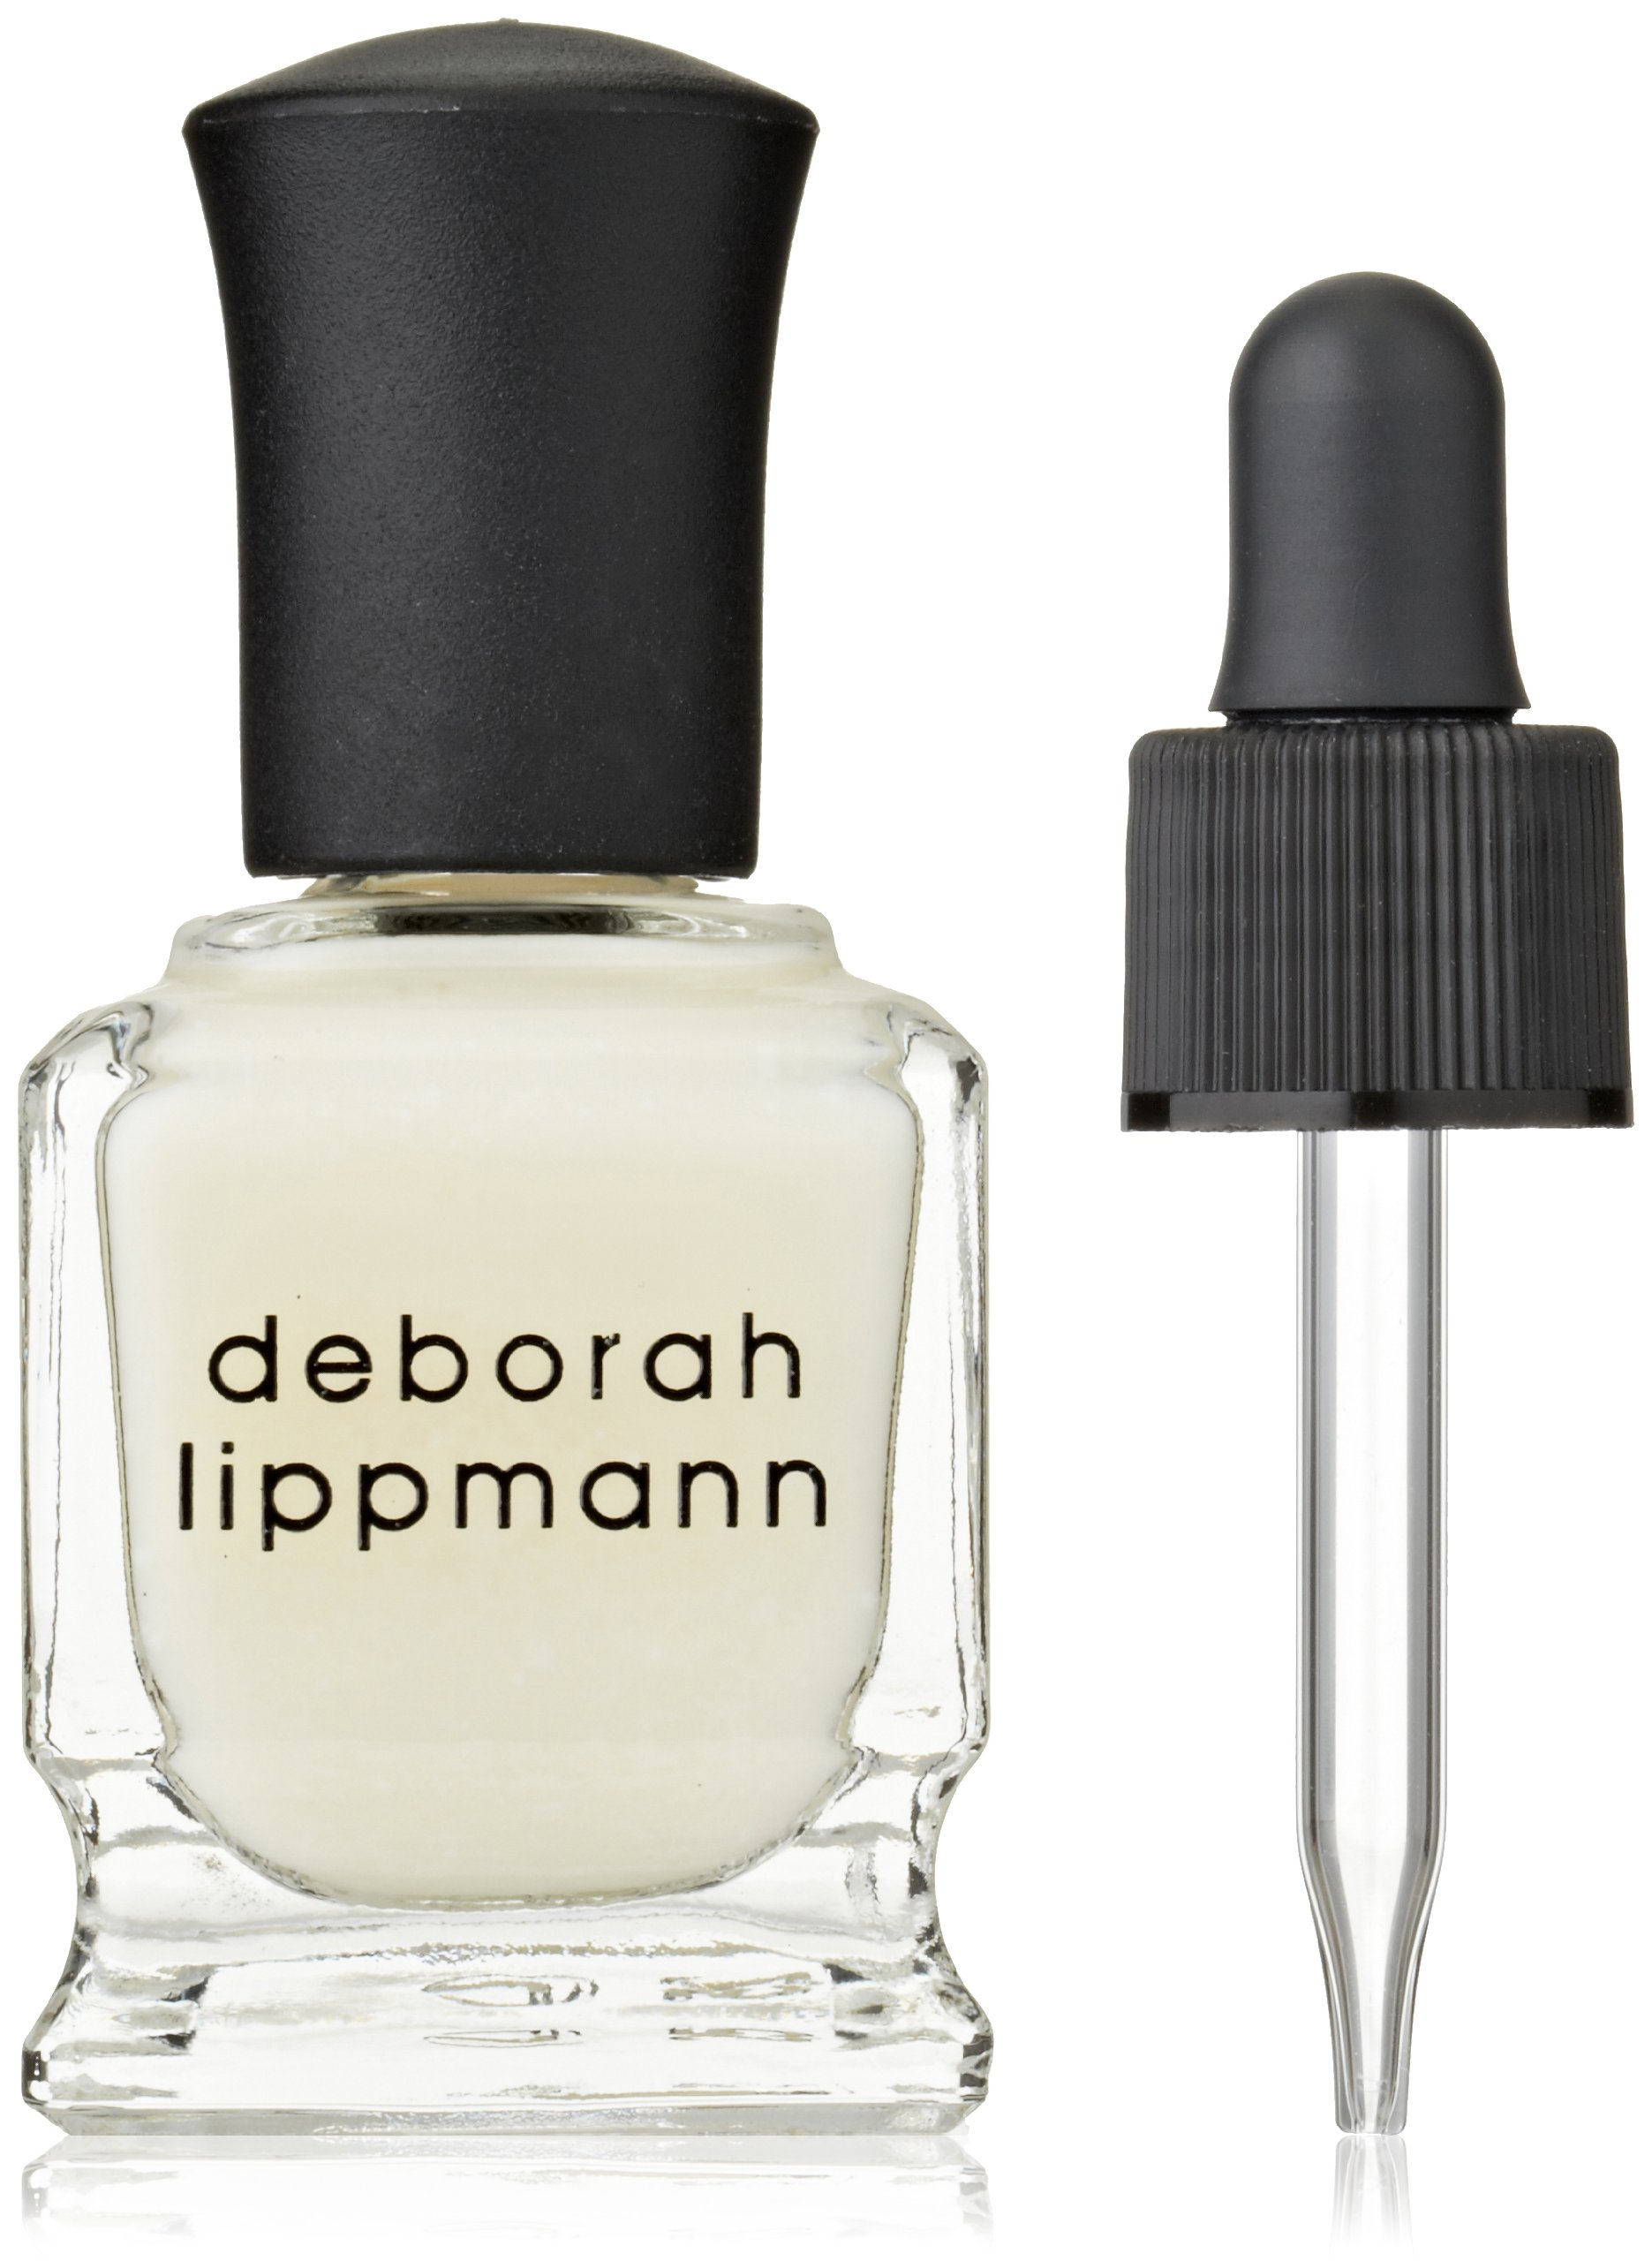 deborah lippmann Cuticle Remover, 0.5 oz.